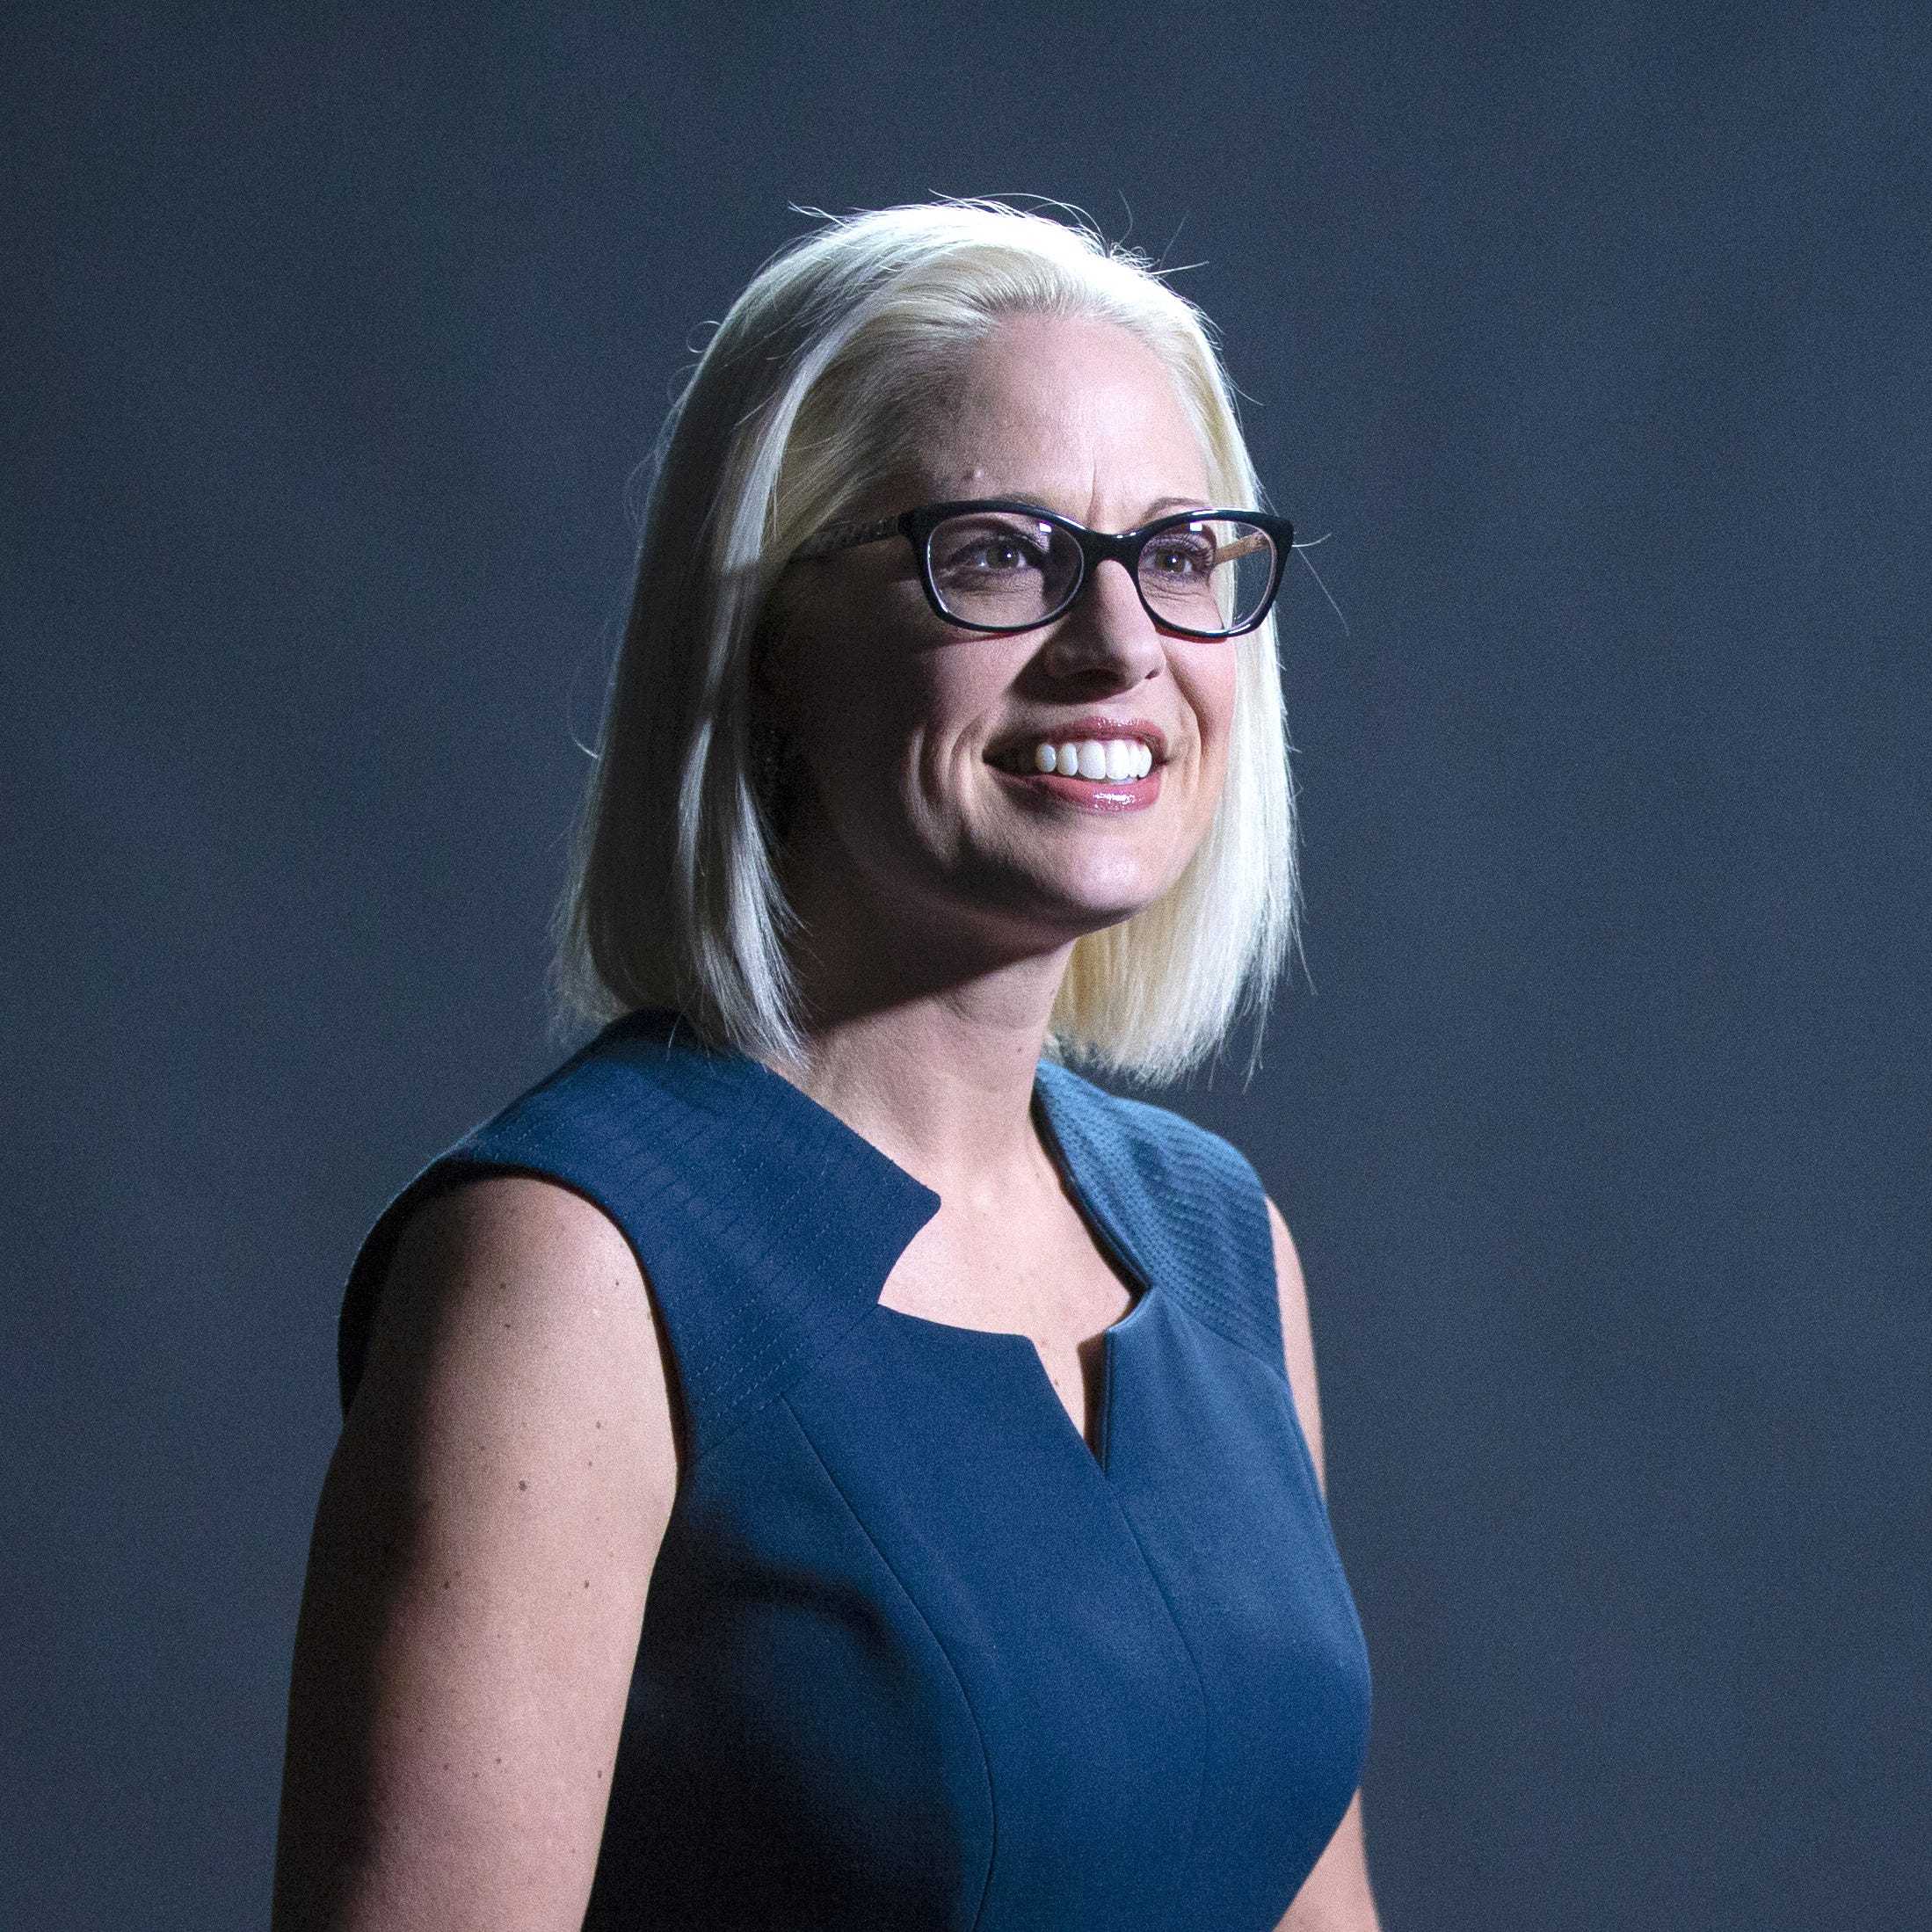 Kyrsten Sinema still hasn't finished reading Mueller report, but says 'no' to impeachment